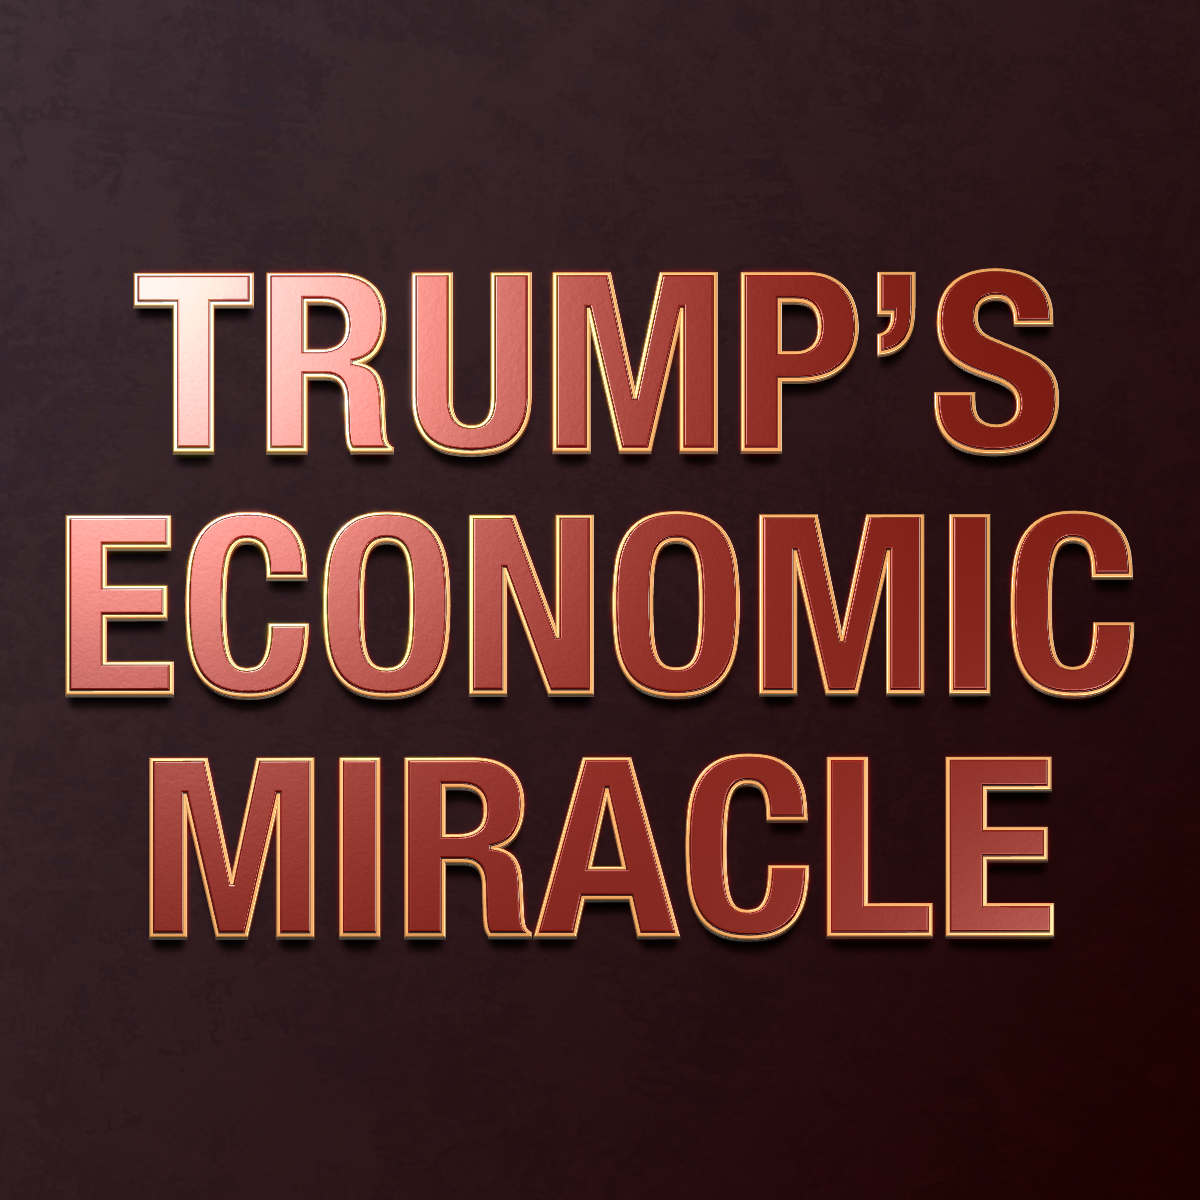 Image result for TRUMP ECONOMIC MIRACLE